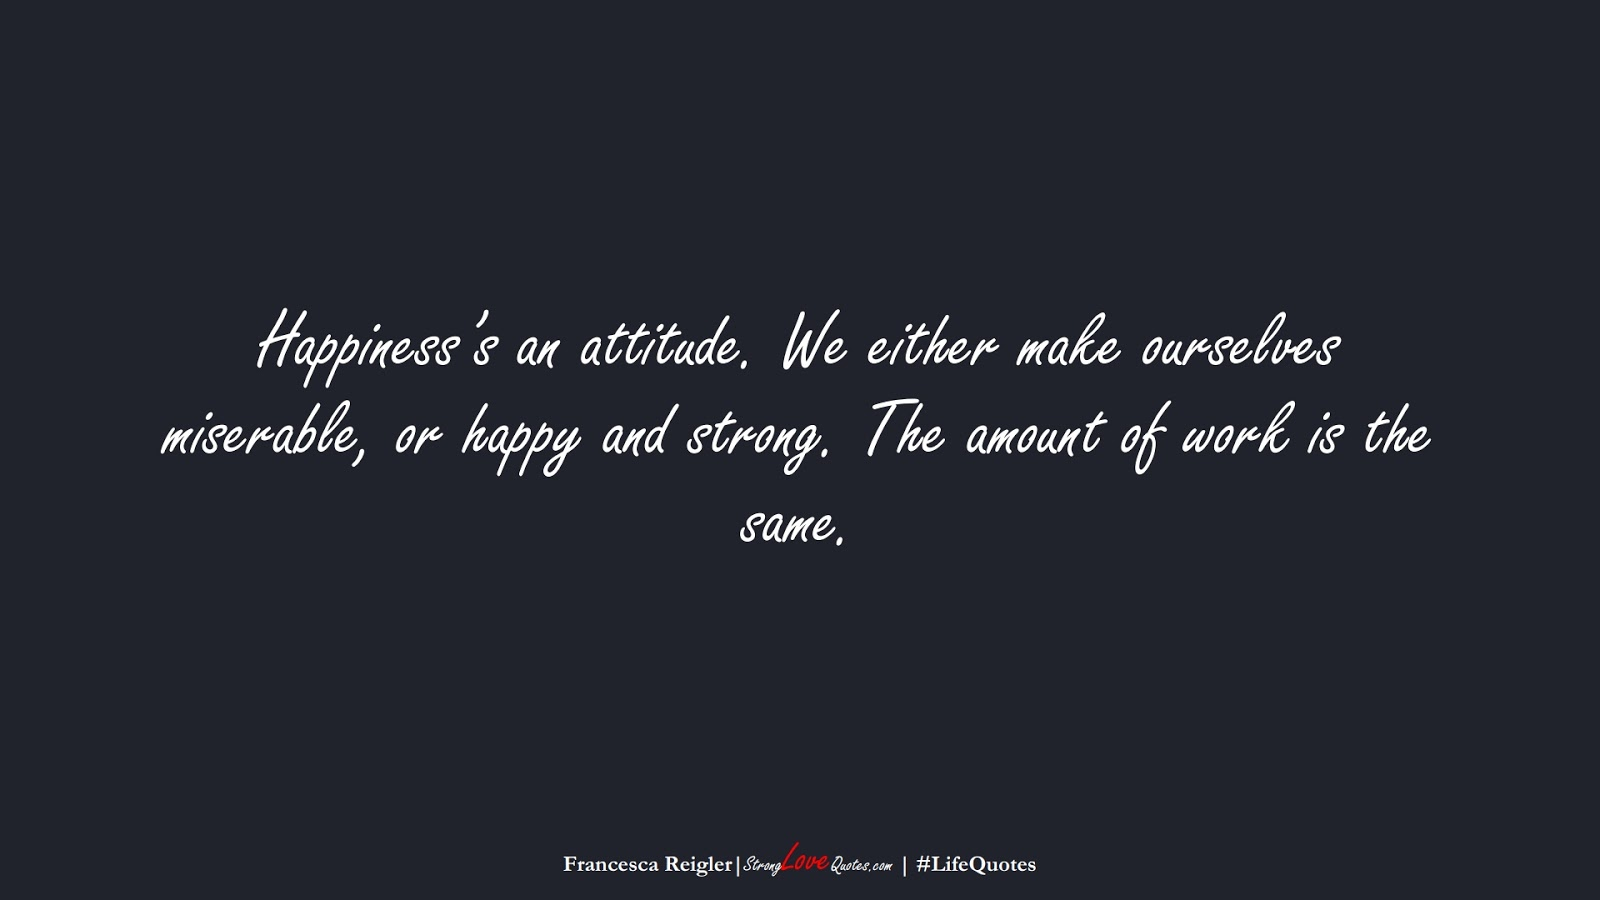 Happiness's an attitude. We either make ourselves miserable, or happy and strong. The amount of work is the same. (Francesca Reigler);  #LifeQuotes